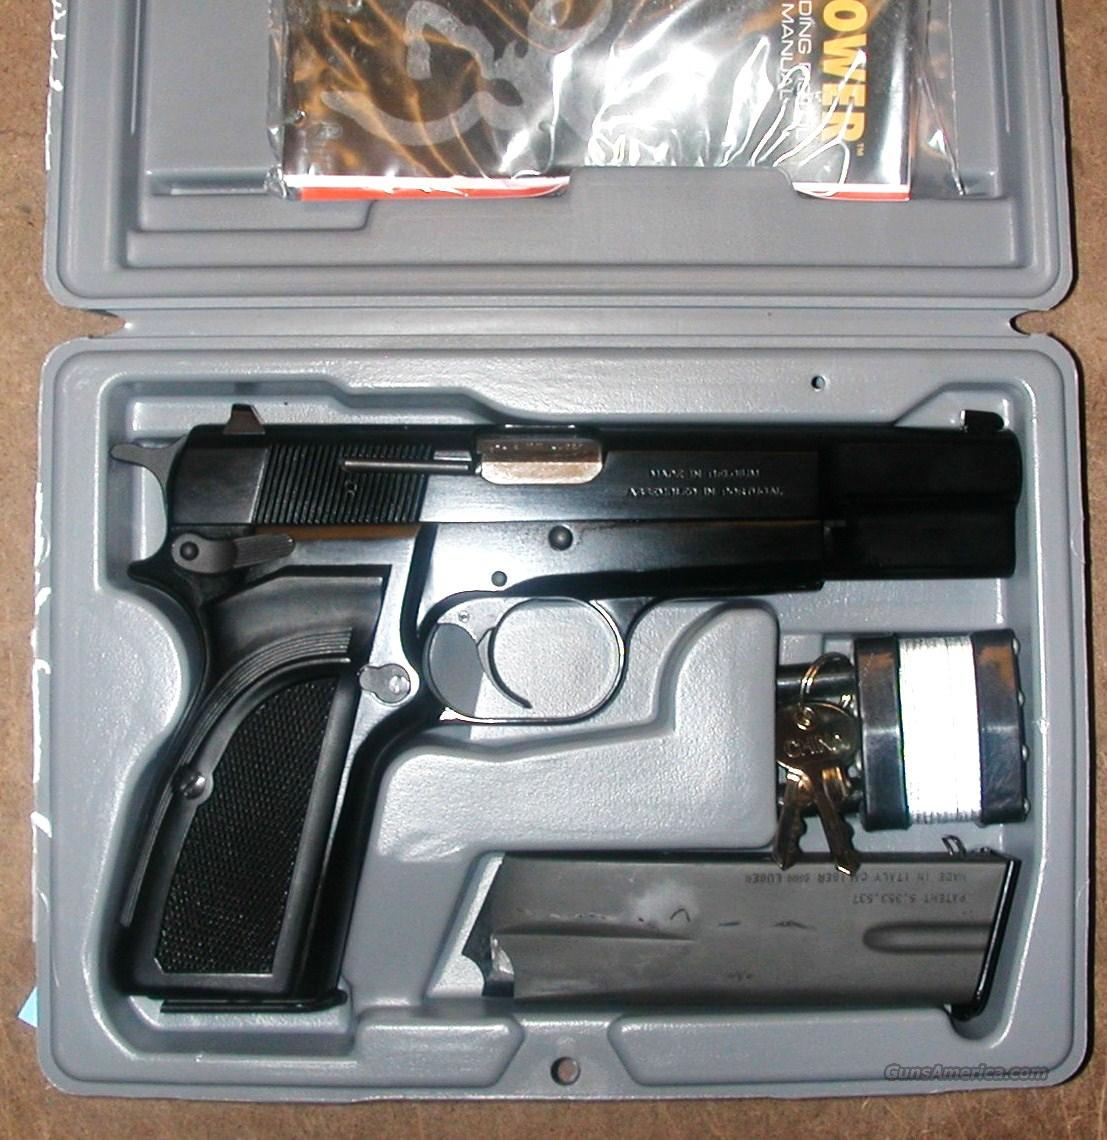 Browning Mark III, 9mm, Hi Power, 2 thirteen rnd mags, NIB  Guns > Pistols > Browning Pistols > Hi Power